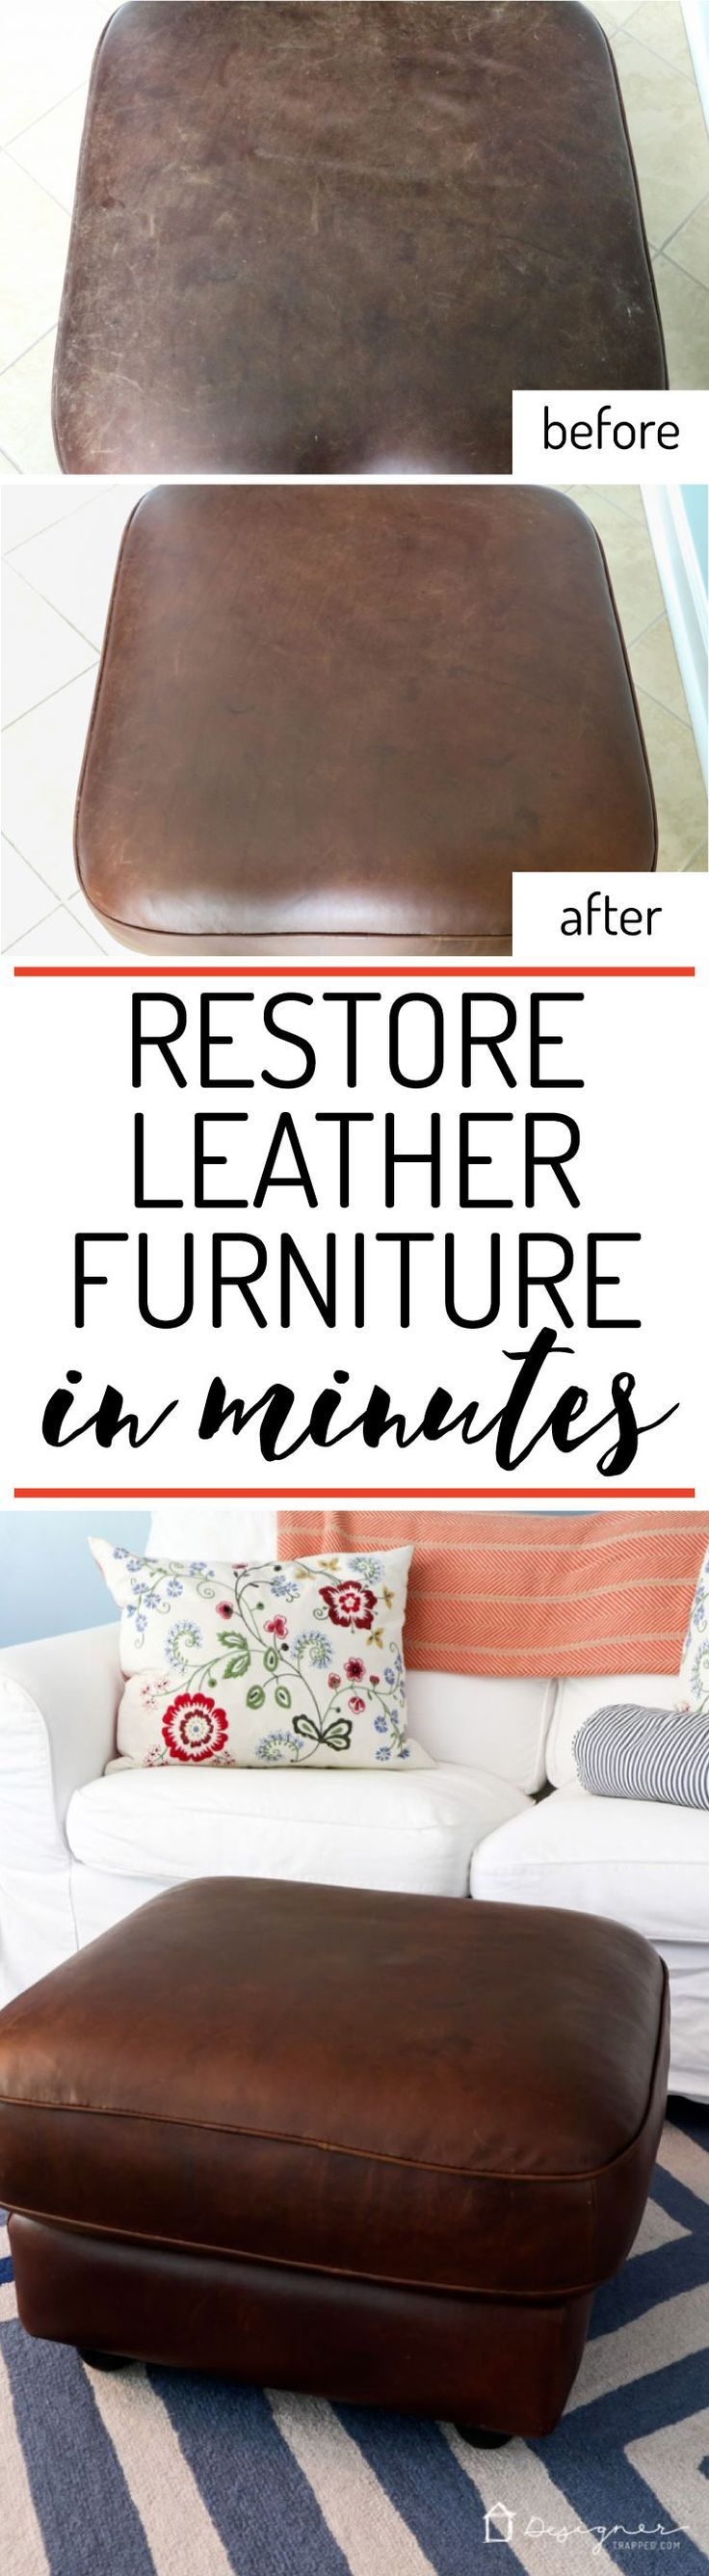 Restoring Leather Sofa Bed Slipcover Uk Learn How To Restore Furniture Organize Cleaning I Had No Idea But This Makes It Look So Easy Can T Wait Try On My Couch